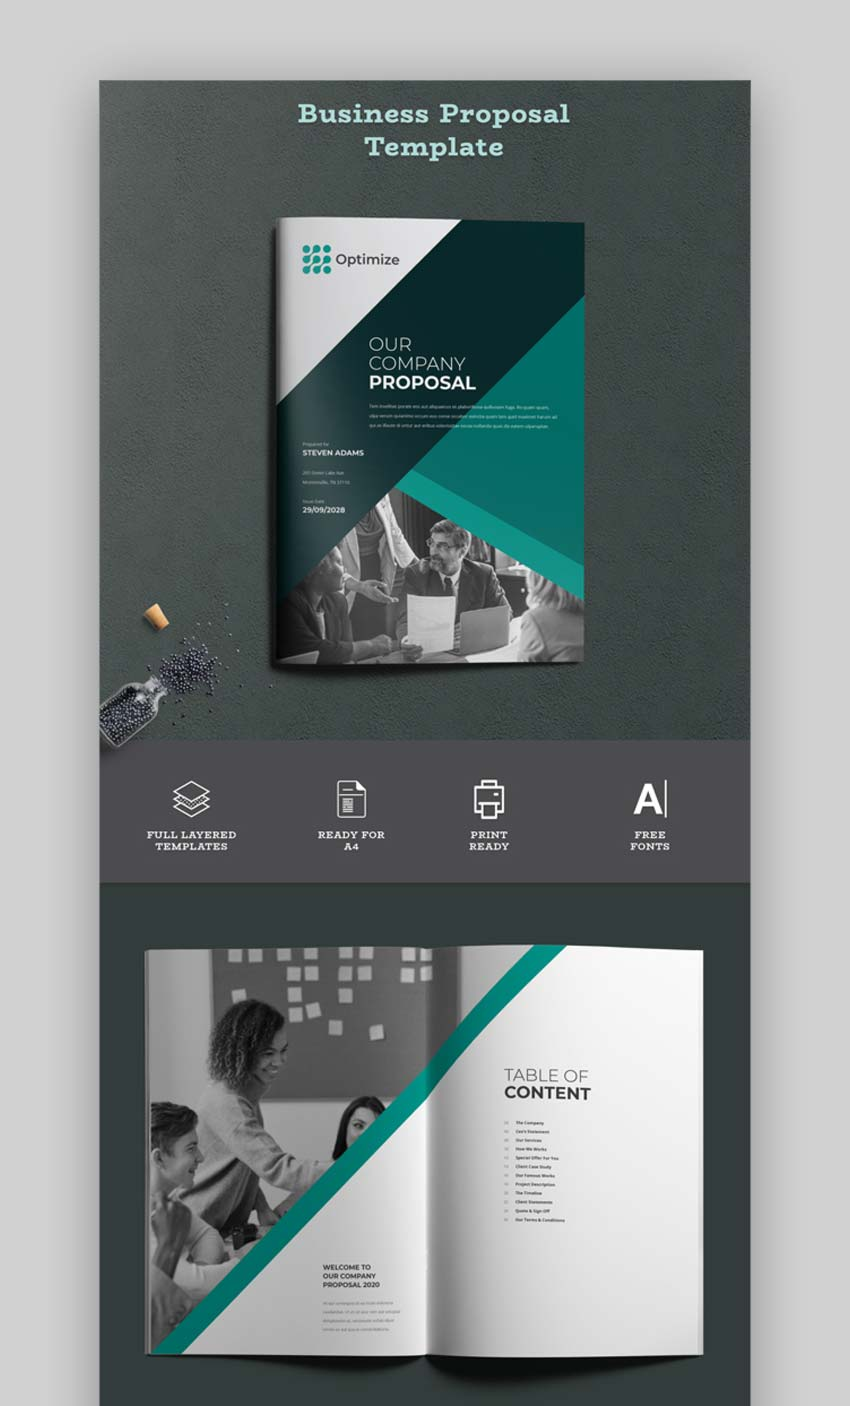 Business Proposal Design Template